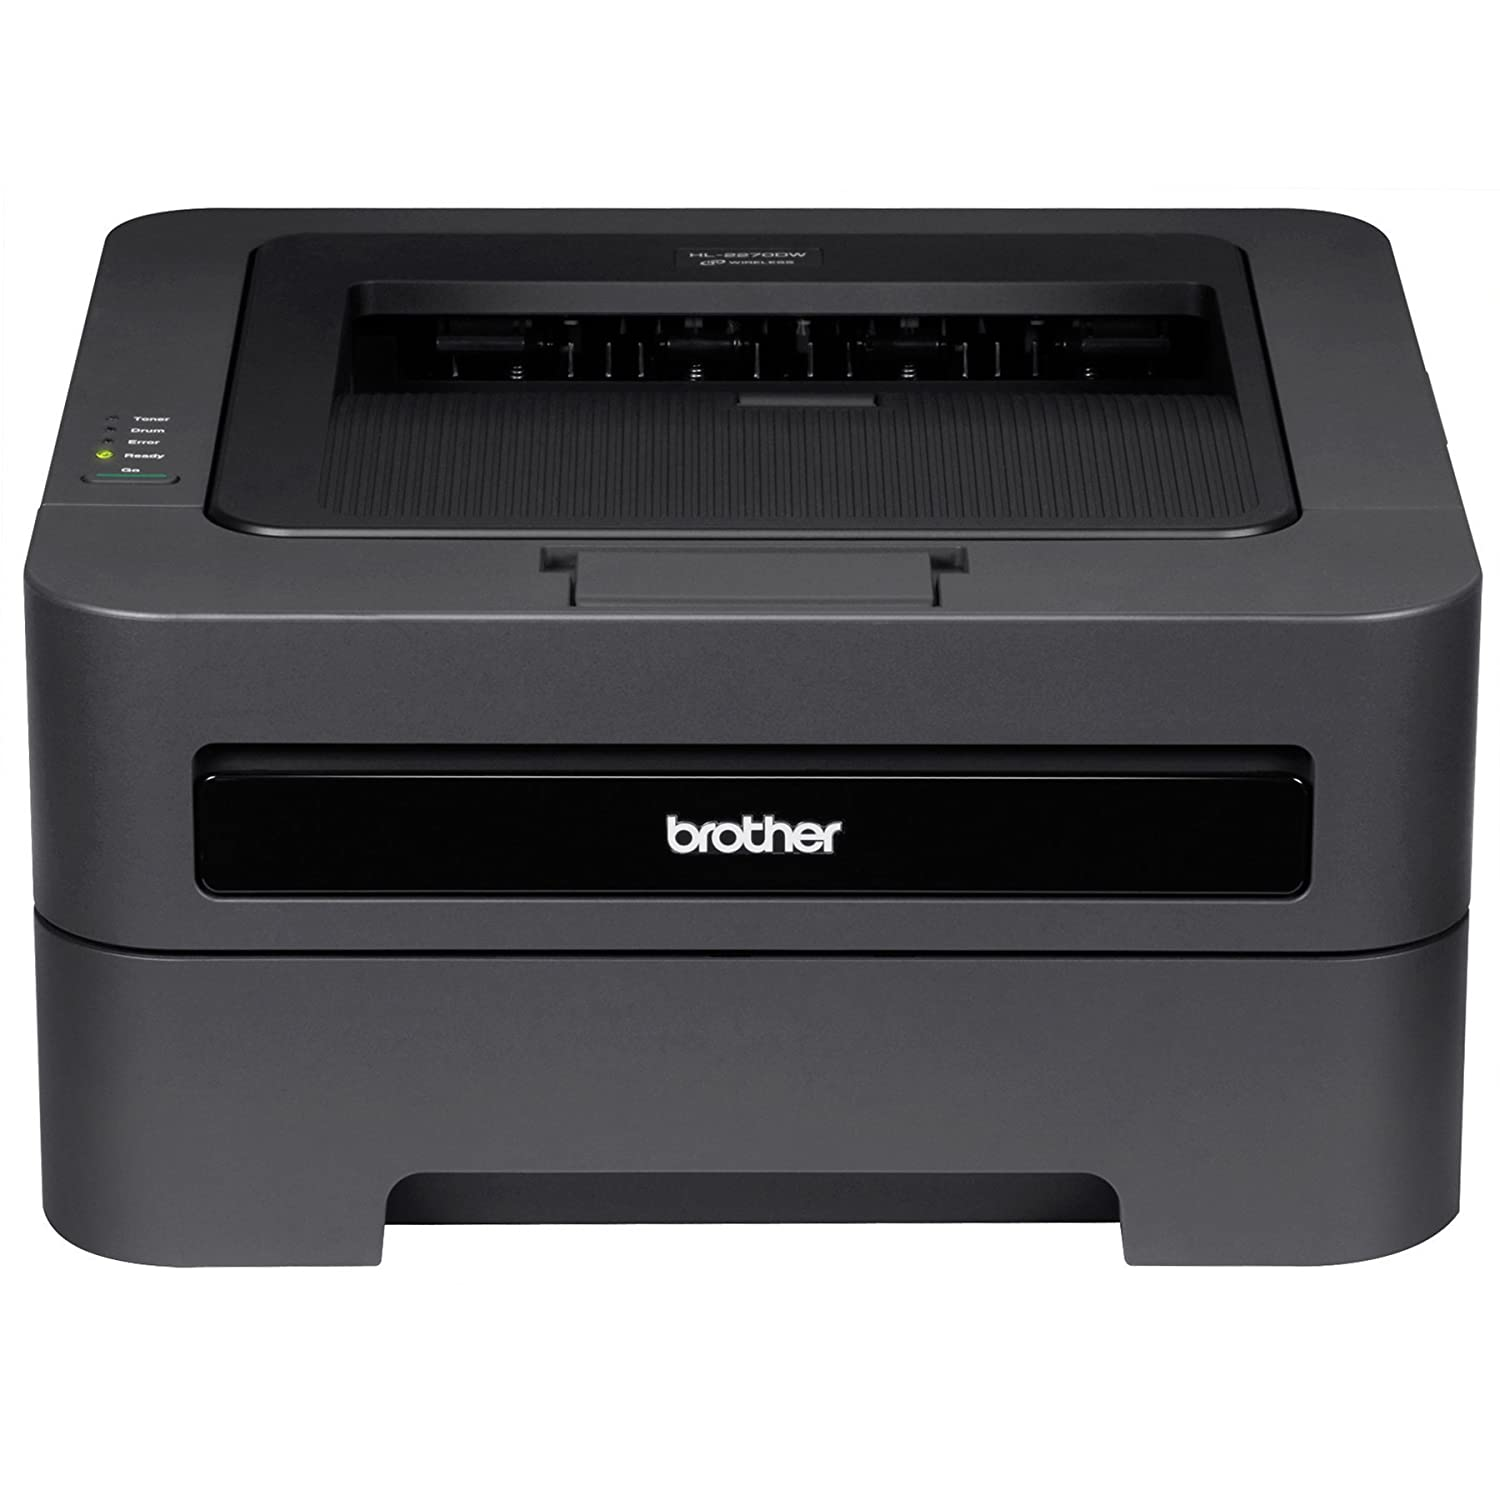 best printer for college students 2015